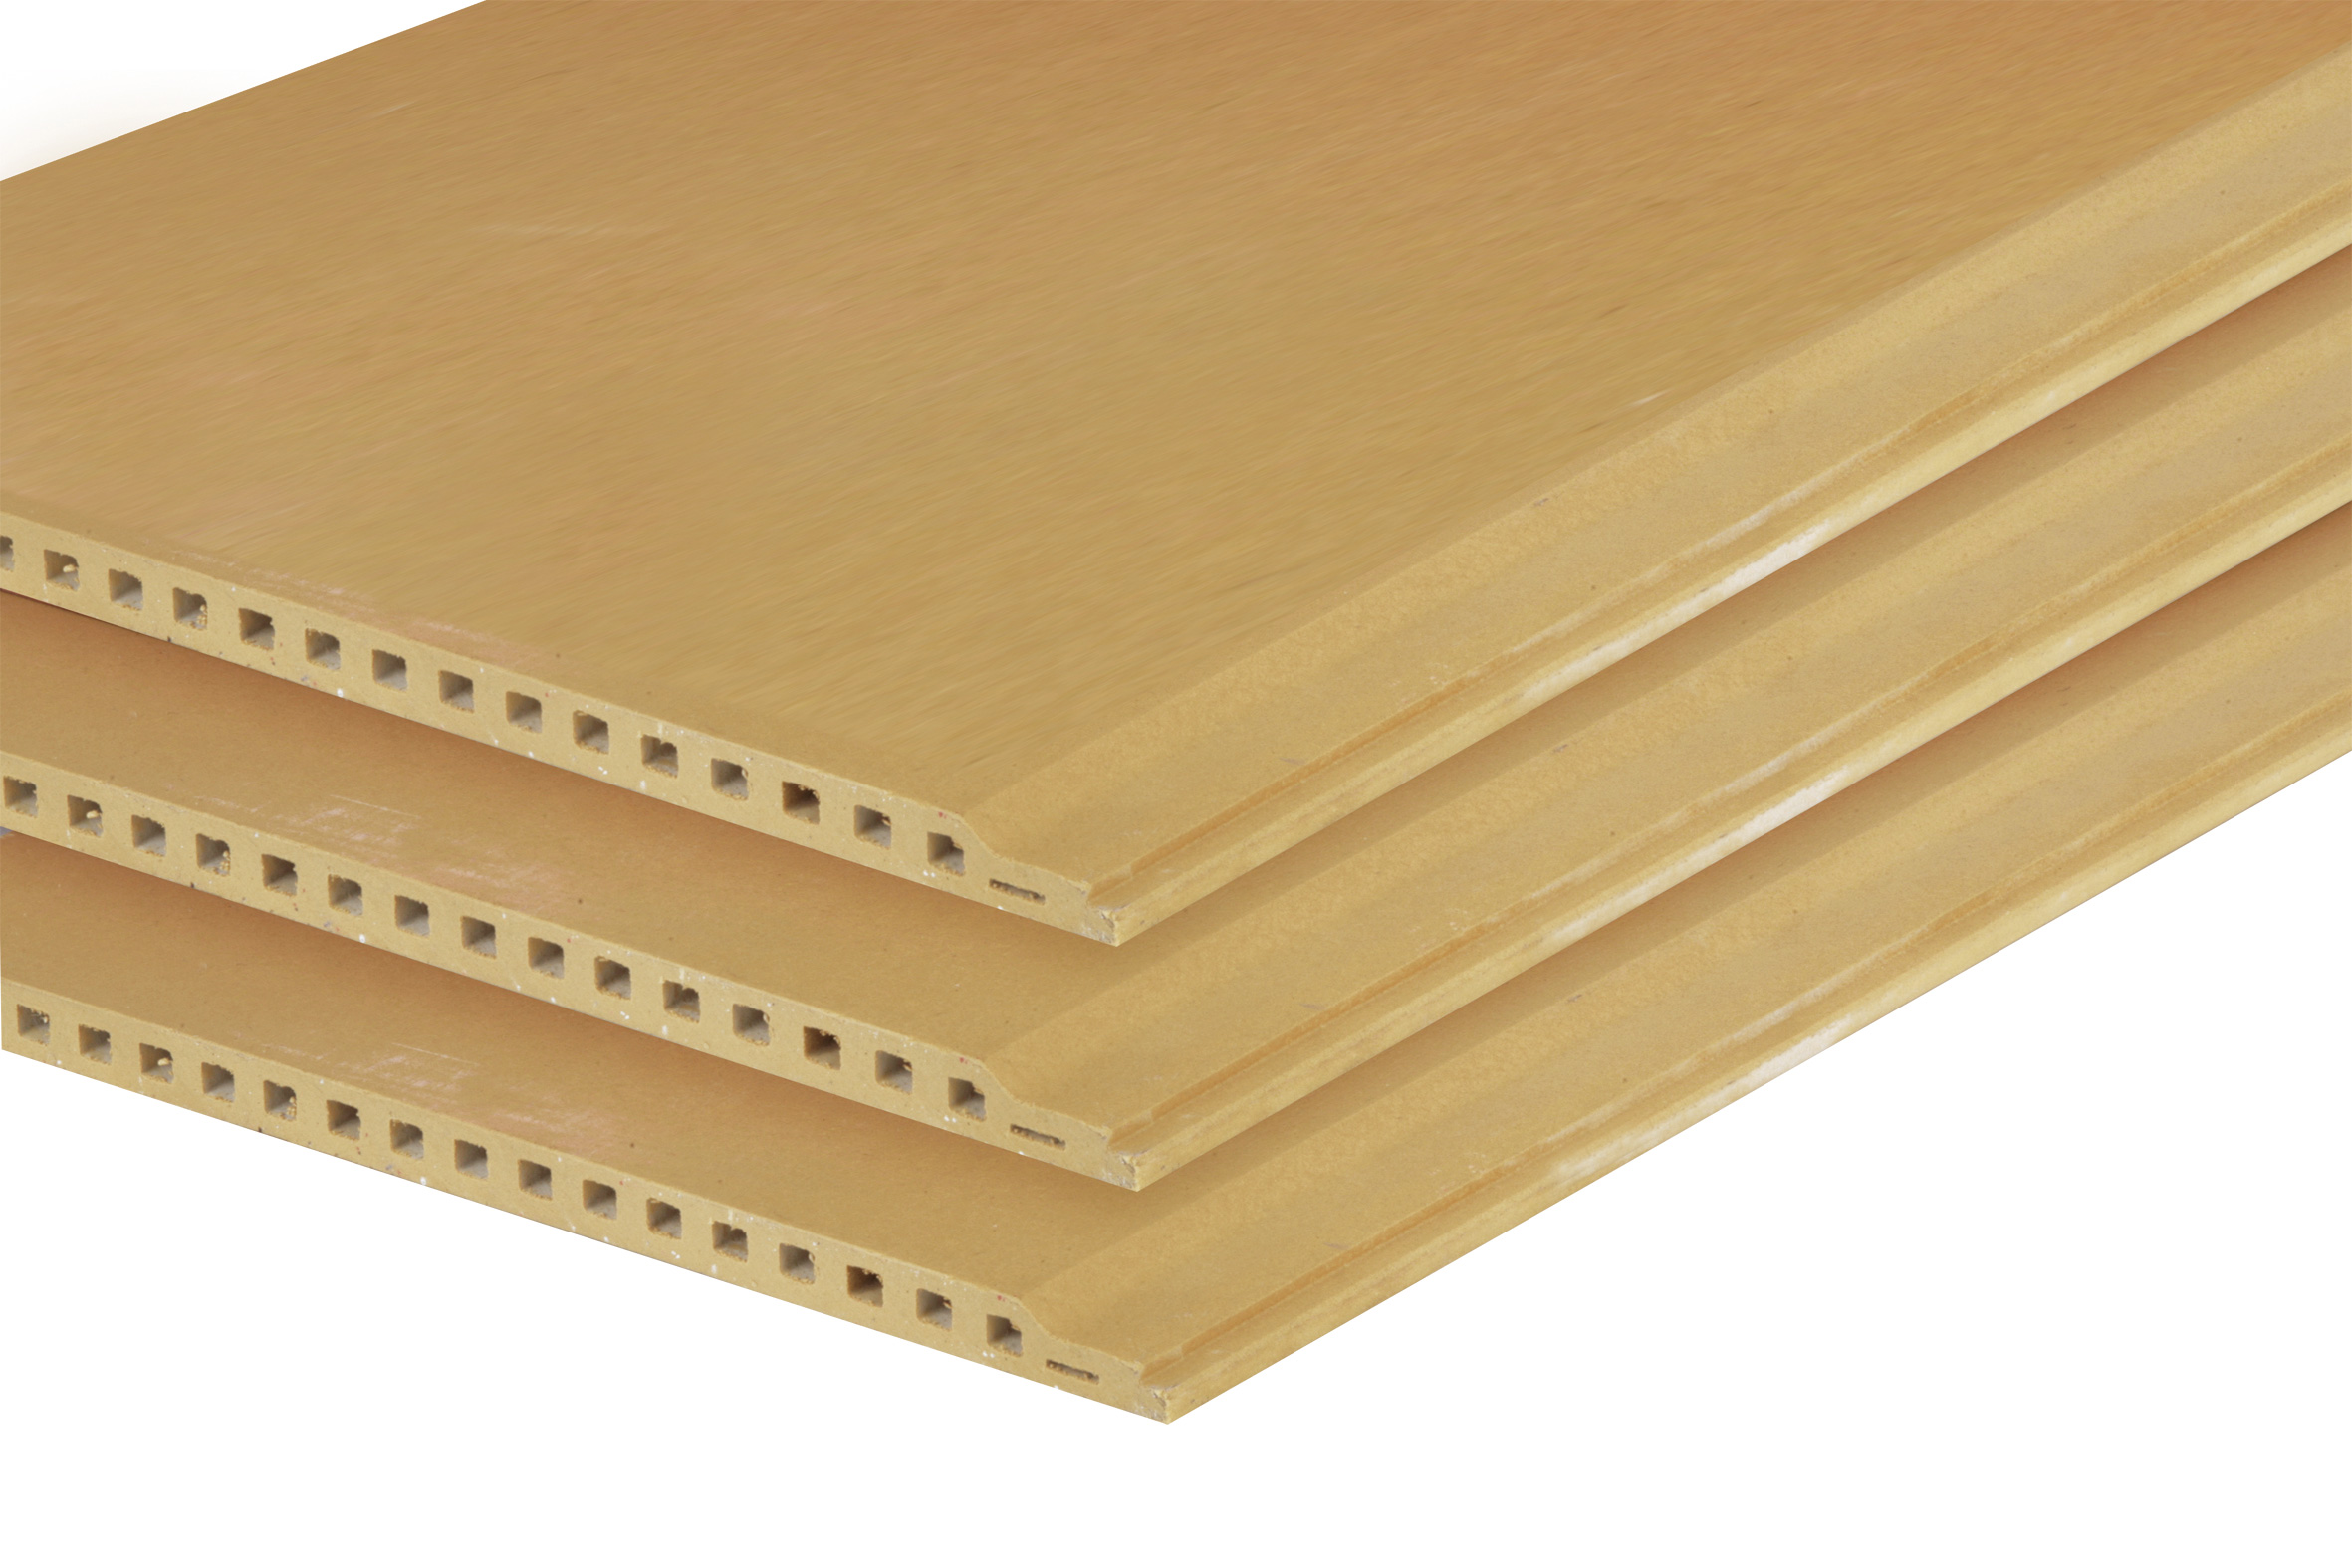 BNBM HOLLOW Fiber cement board / cladding / panel / siding / hollow / thorough color